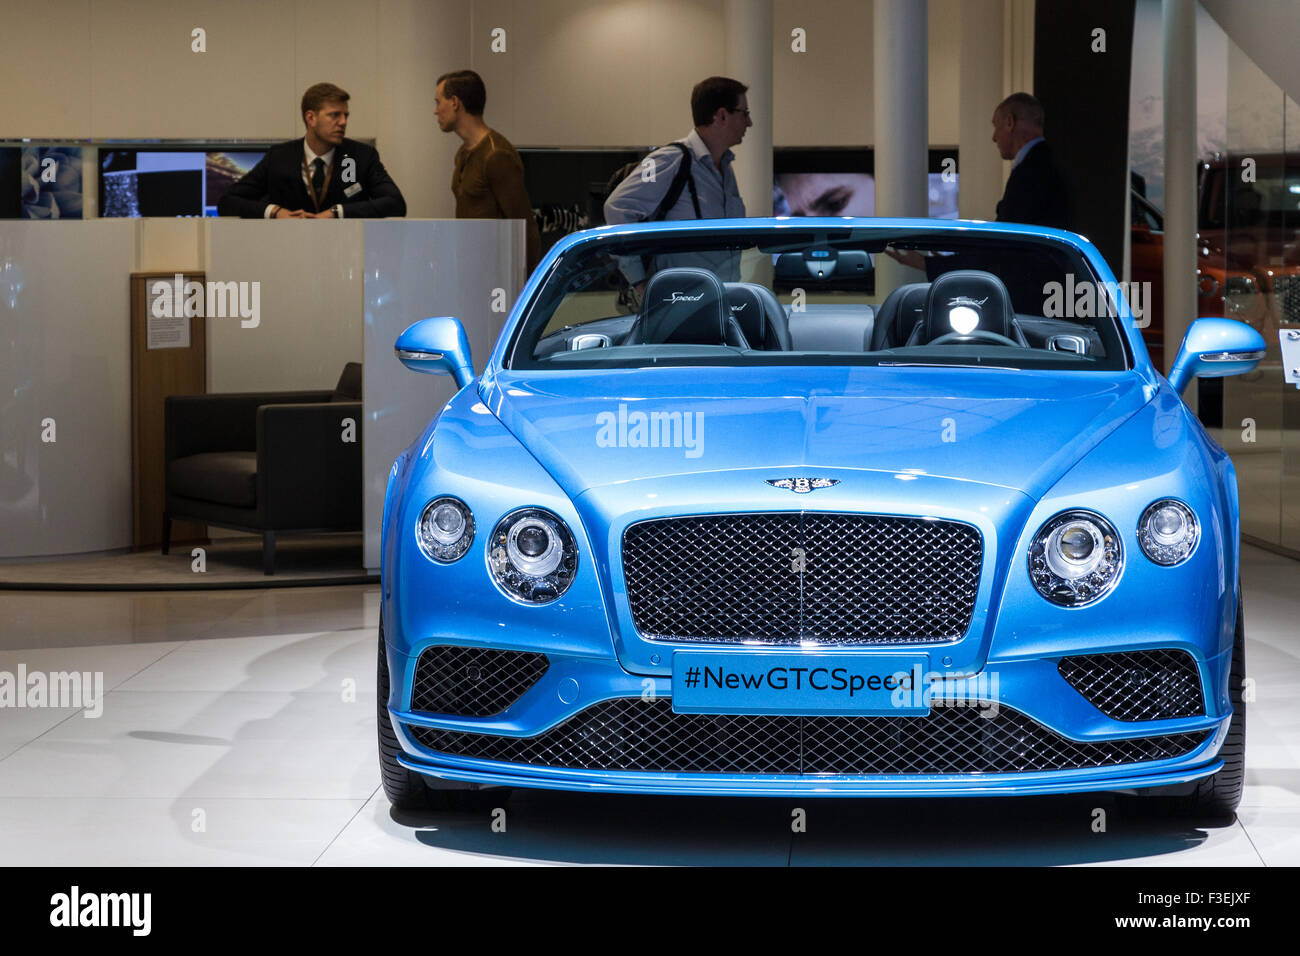 Bentley GTC Speed Luxury Convertible at the IAA International Motor Show 2015 - Stock Image